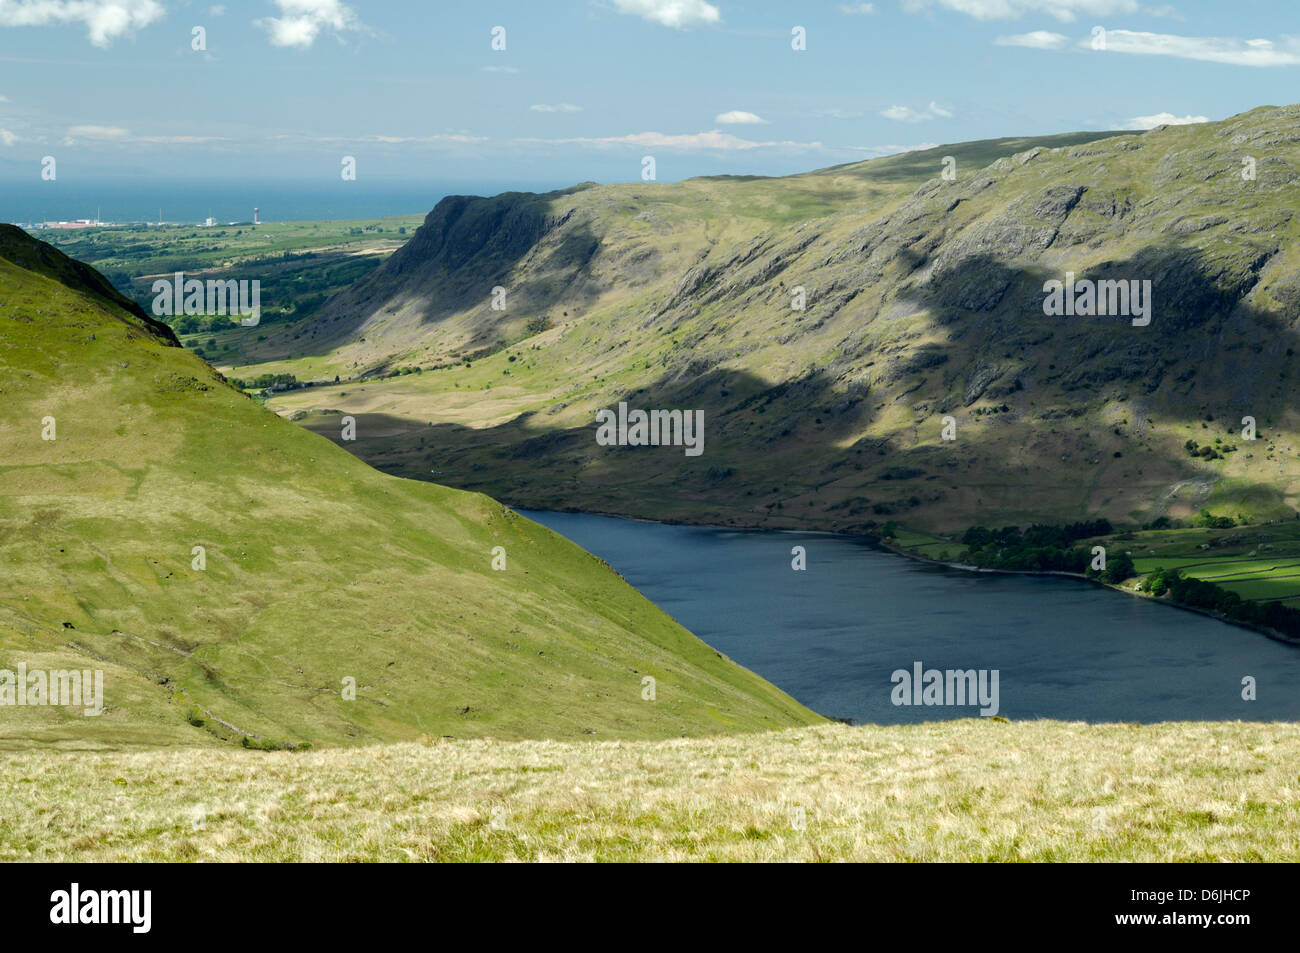 Wast Water, Wasdale, Lake District, with Sellafield Nuclear power station in the background Stock Photo